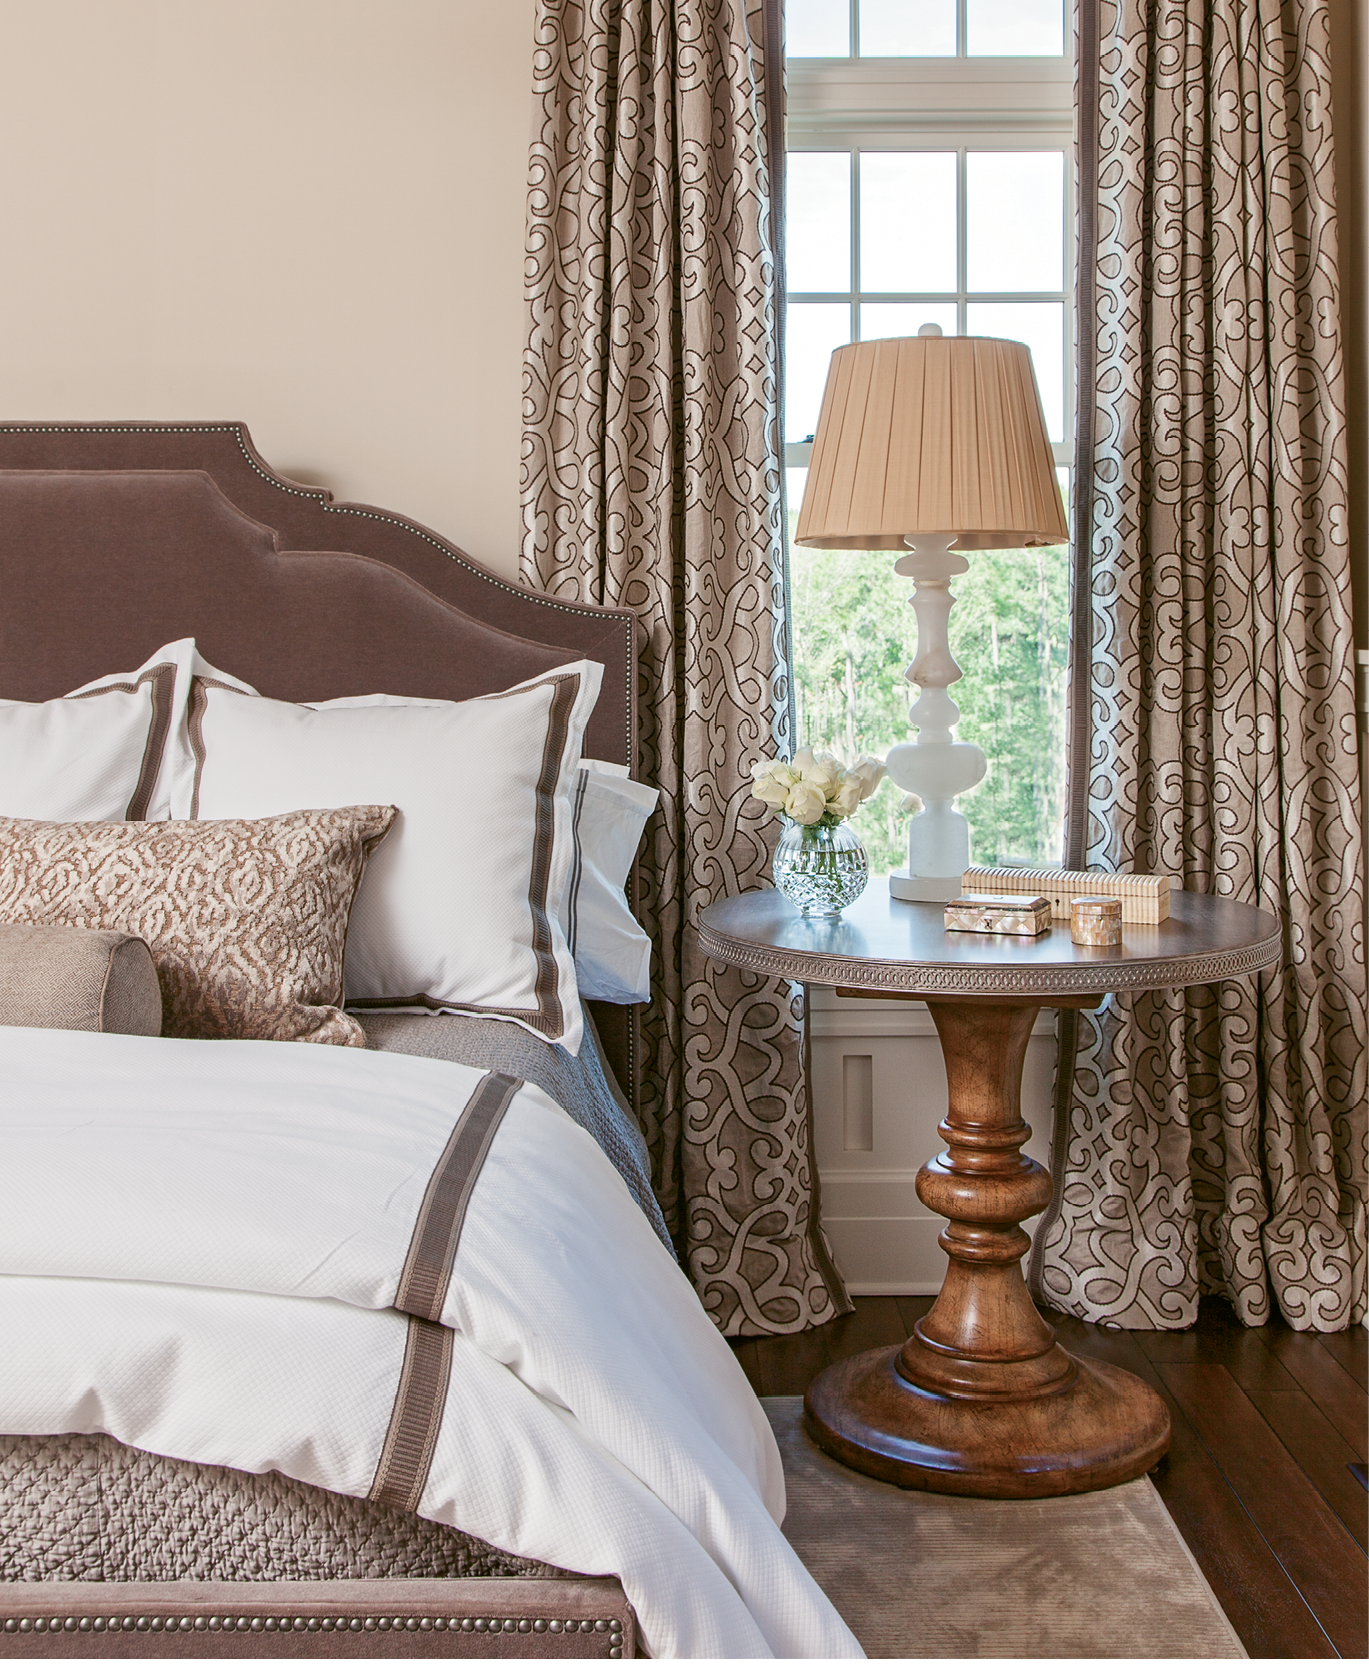 """CURTAIN CALL: """"The master bedroom design was driven by the curtain fabric by Schumacher,"""" Ervin says. """"Kelly just fell in love with it."""""""